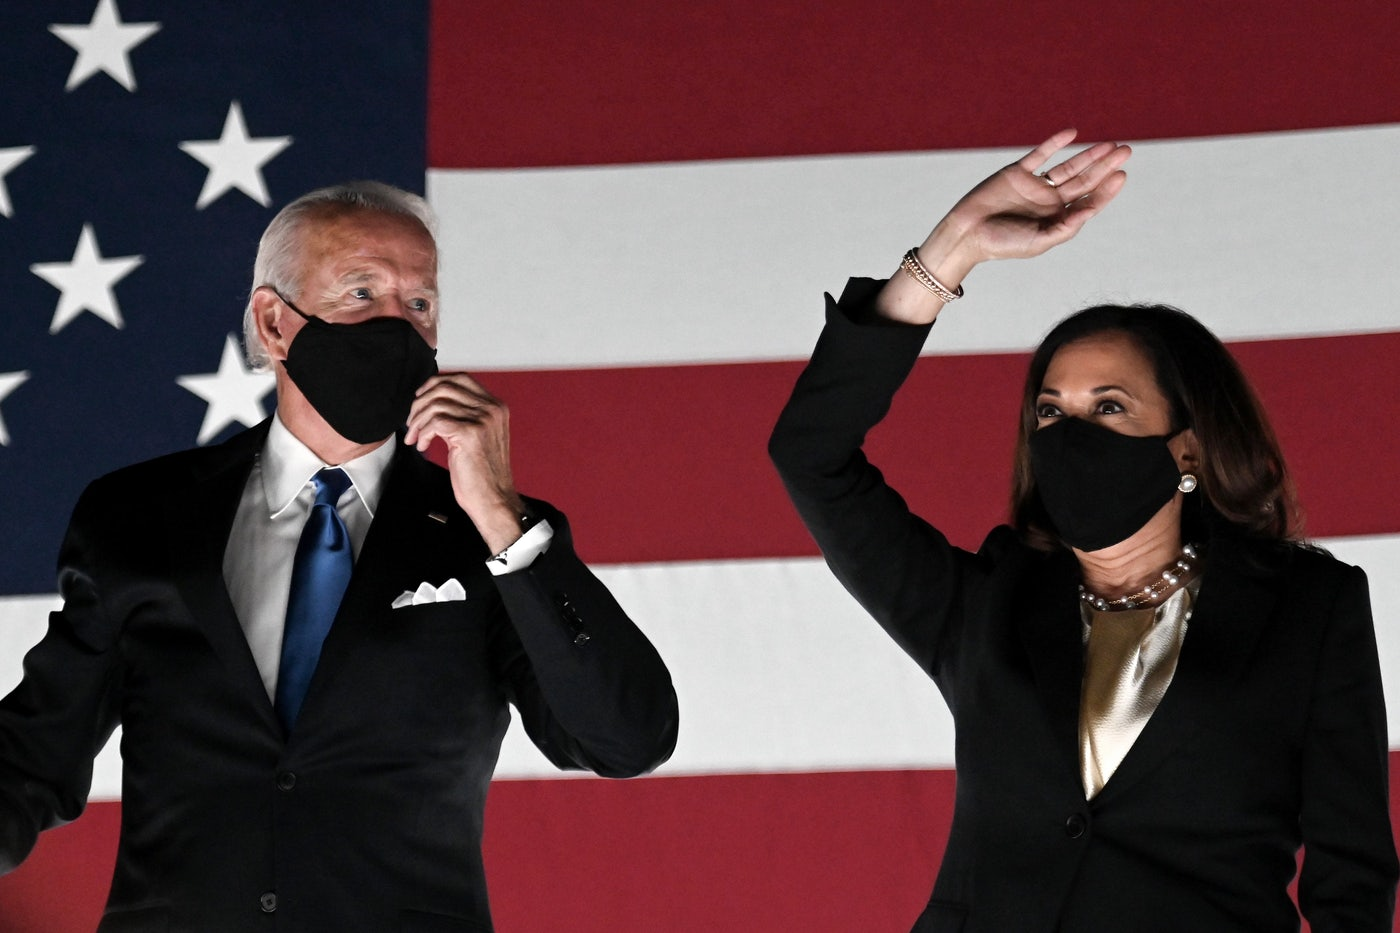 Joe Biden and Kamala Harris stand in front of an American flag backdrop